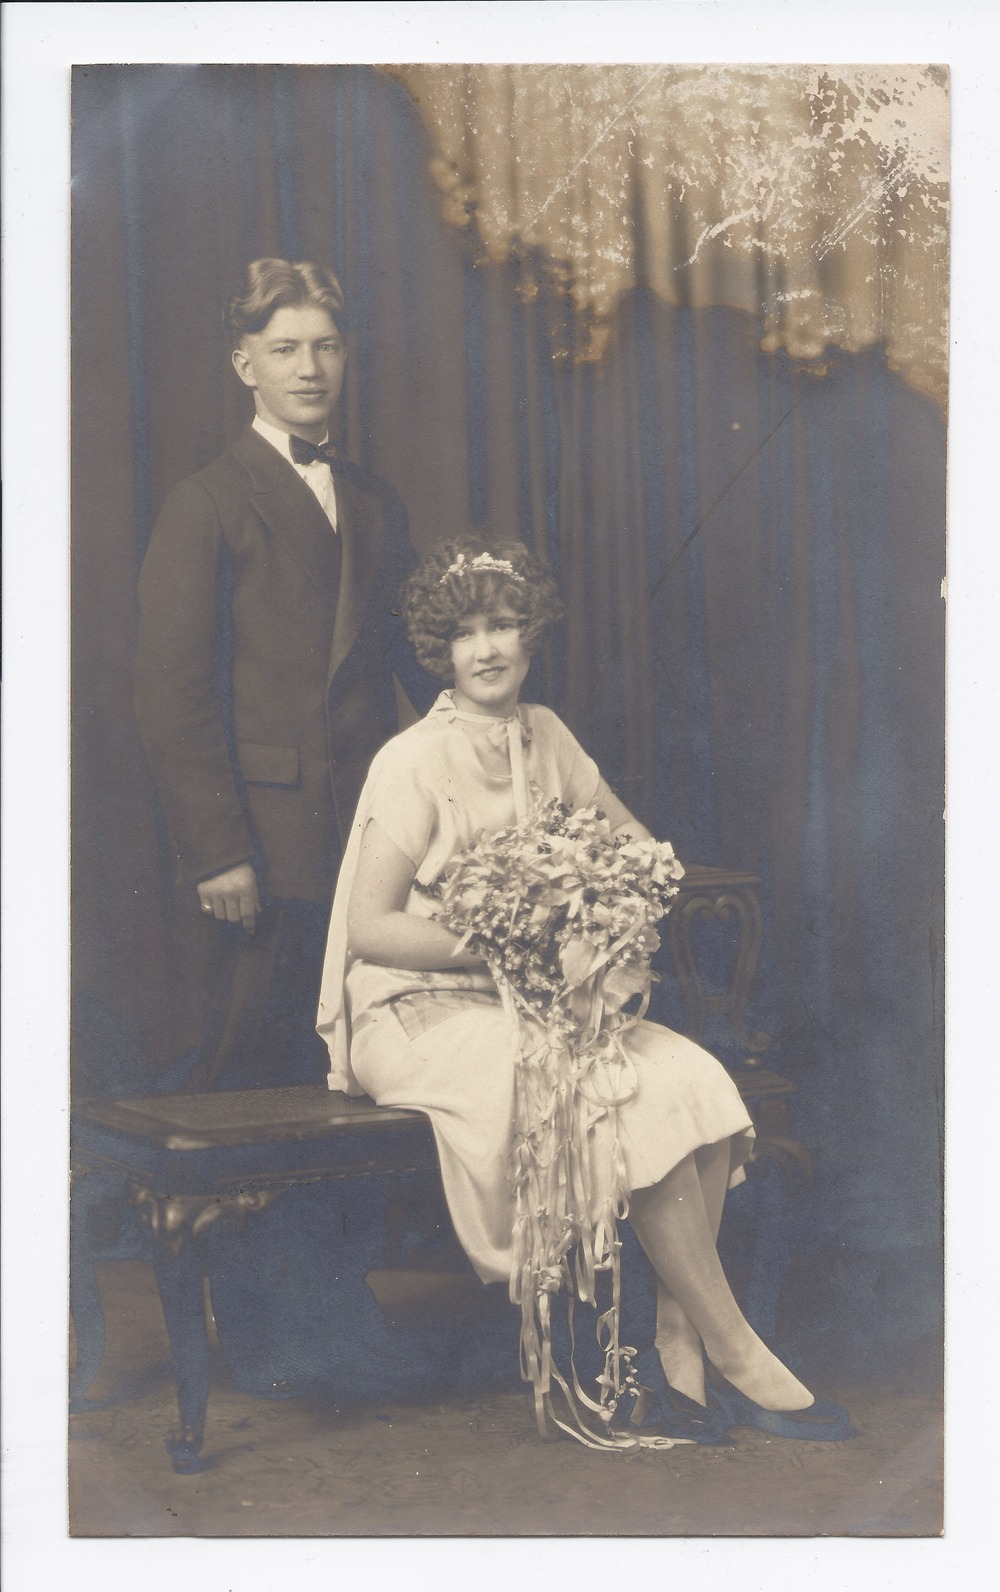 Mr. and Mrs. A. Nelson wedding portrait